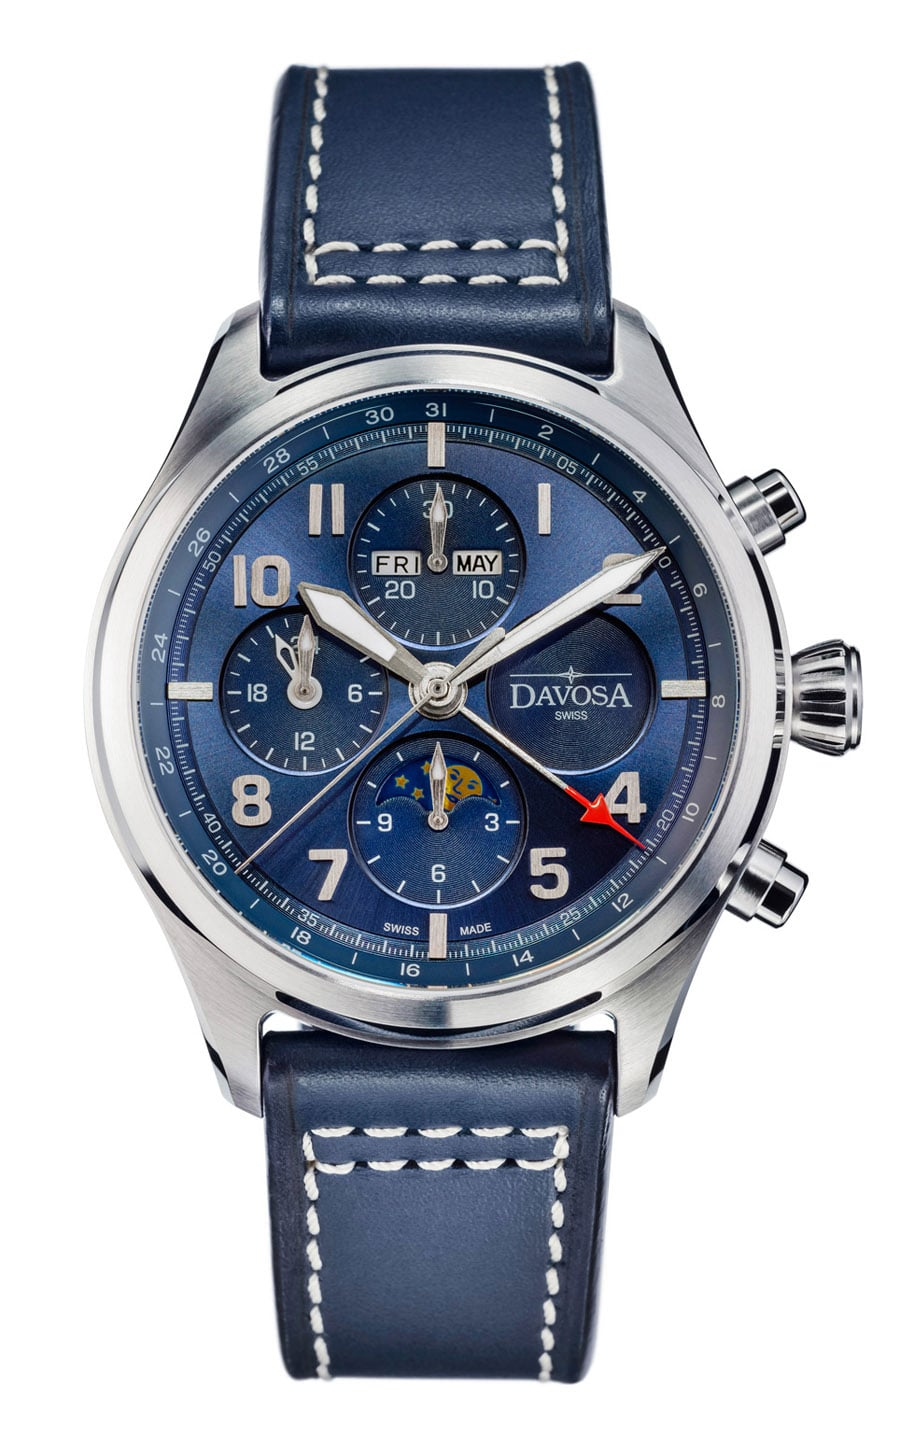 Davosa: Newton Pilot Moonphase Chronograph Limited Edition in Blau